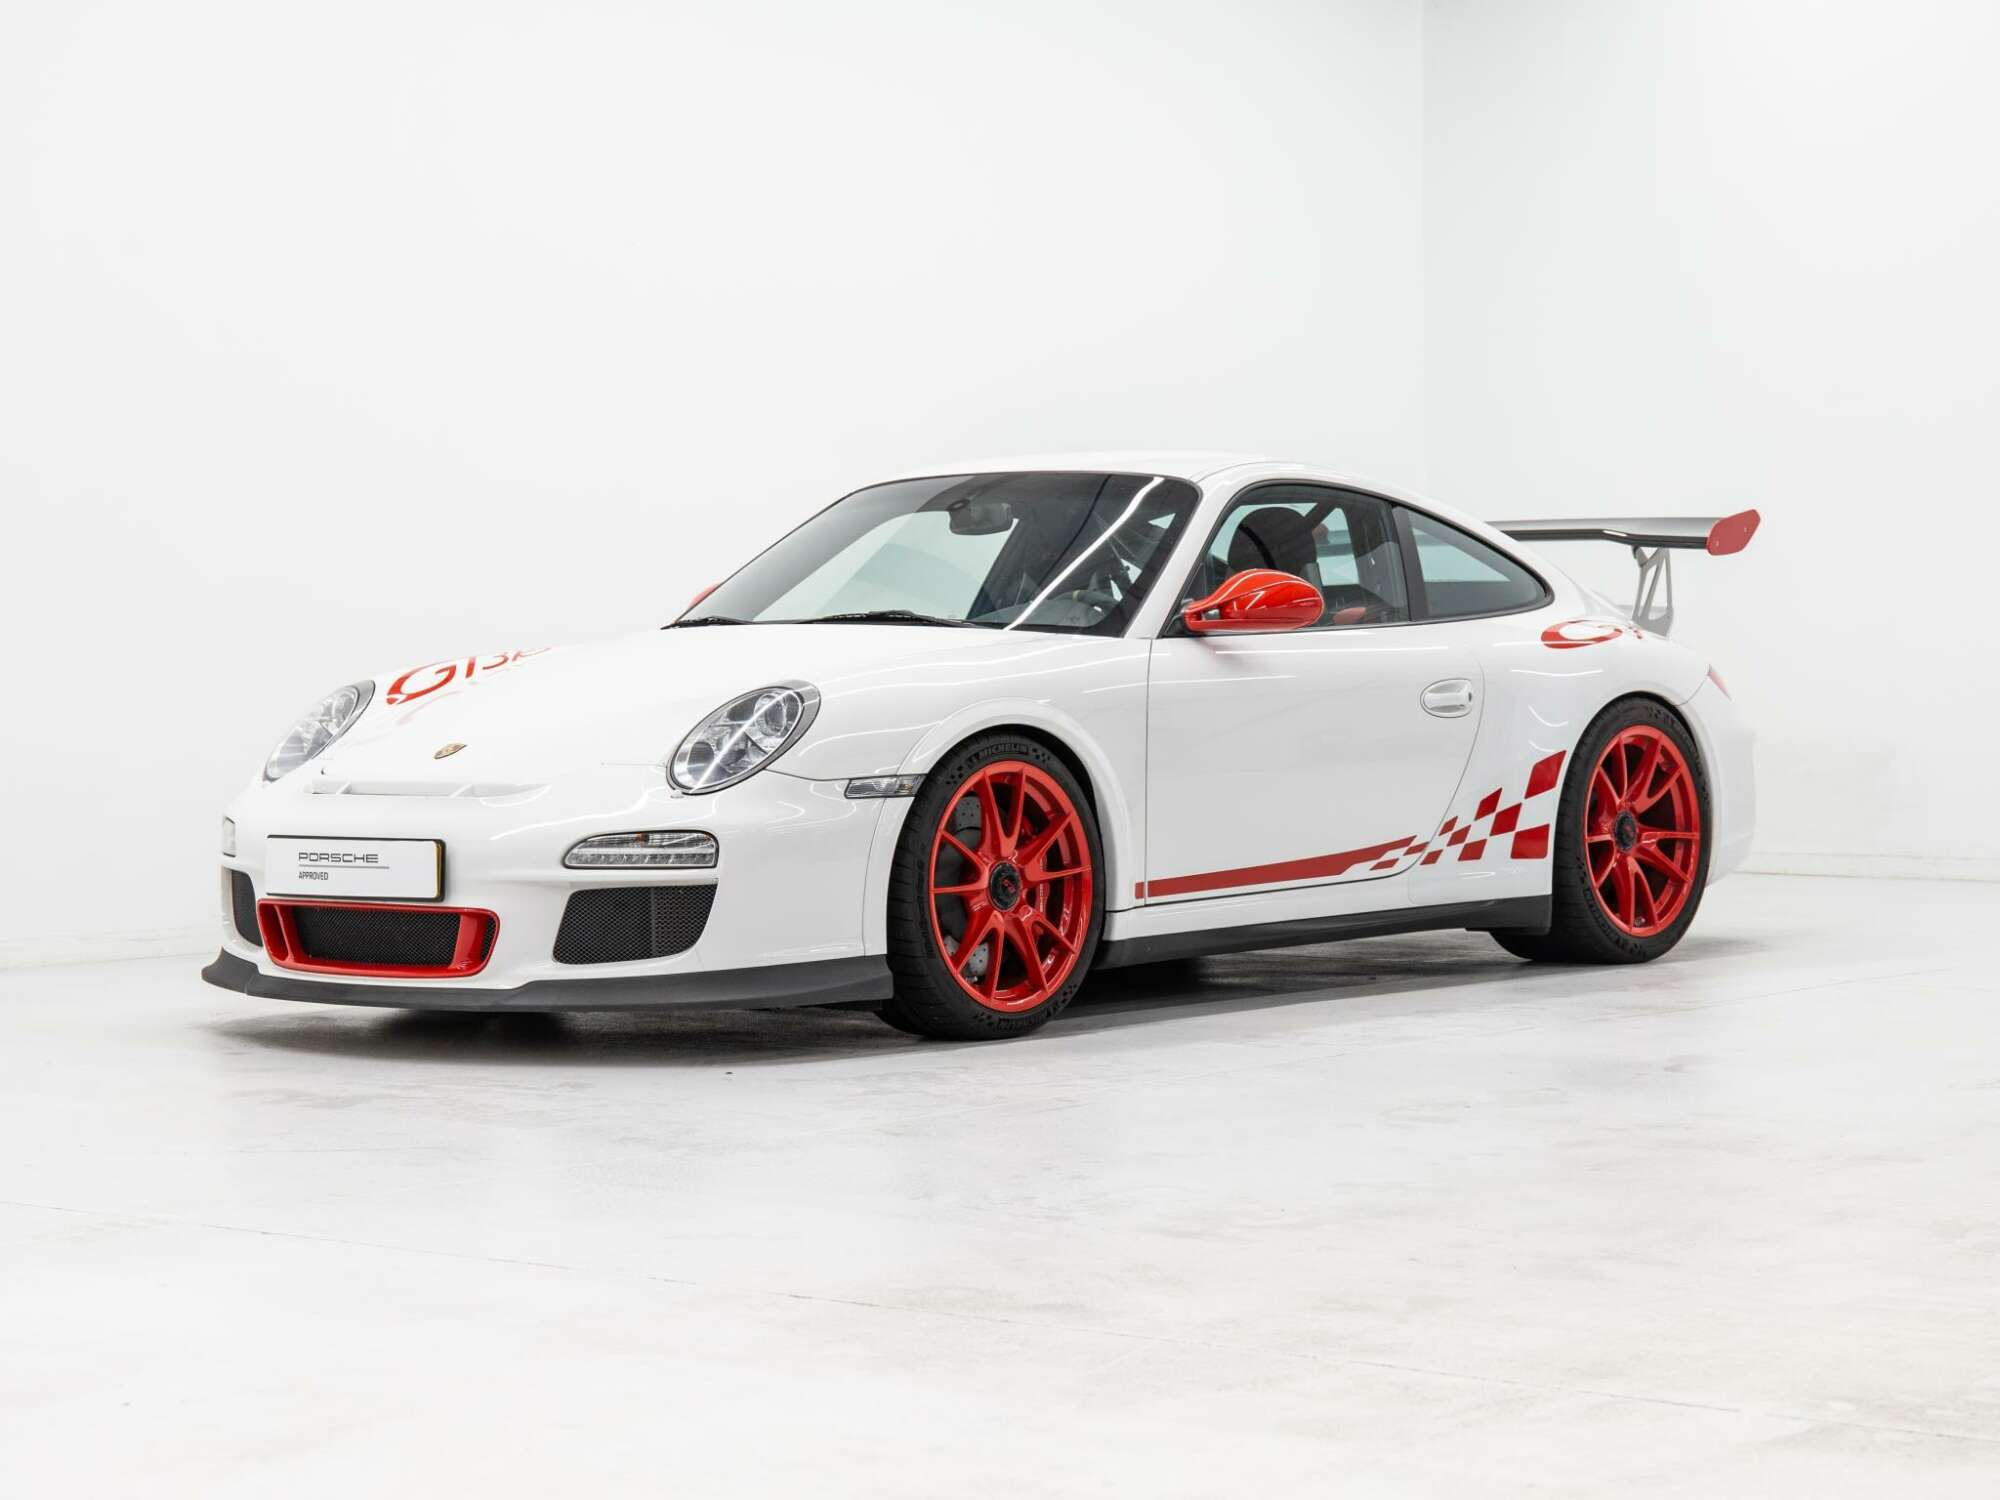 Porsche 911 997 Gt3 Rs Elferspot Porsche Sportscars For Sale